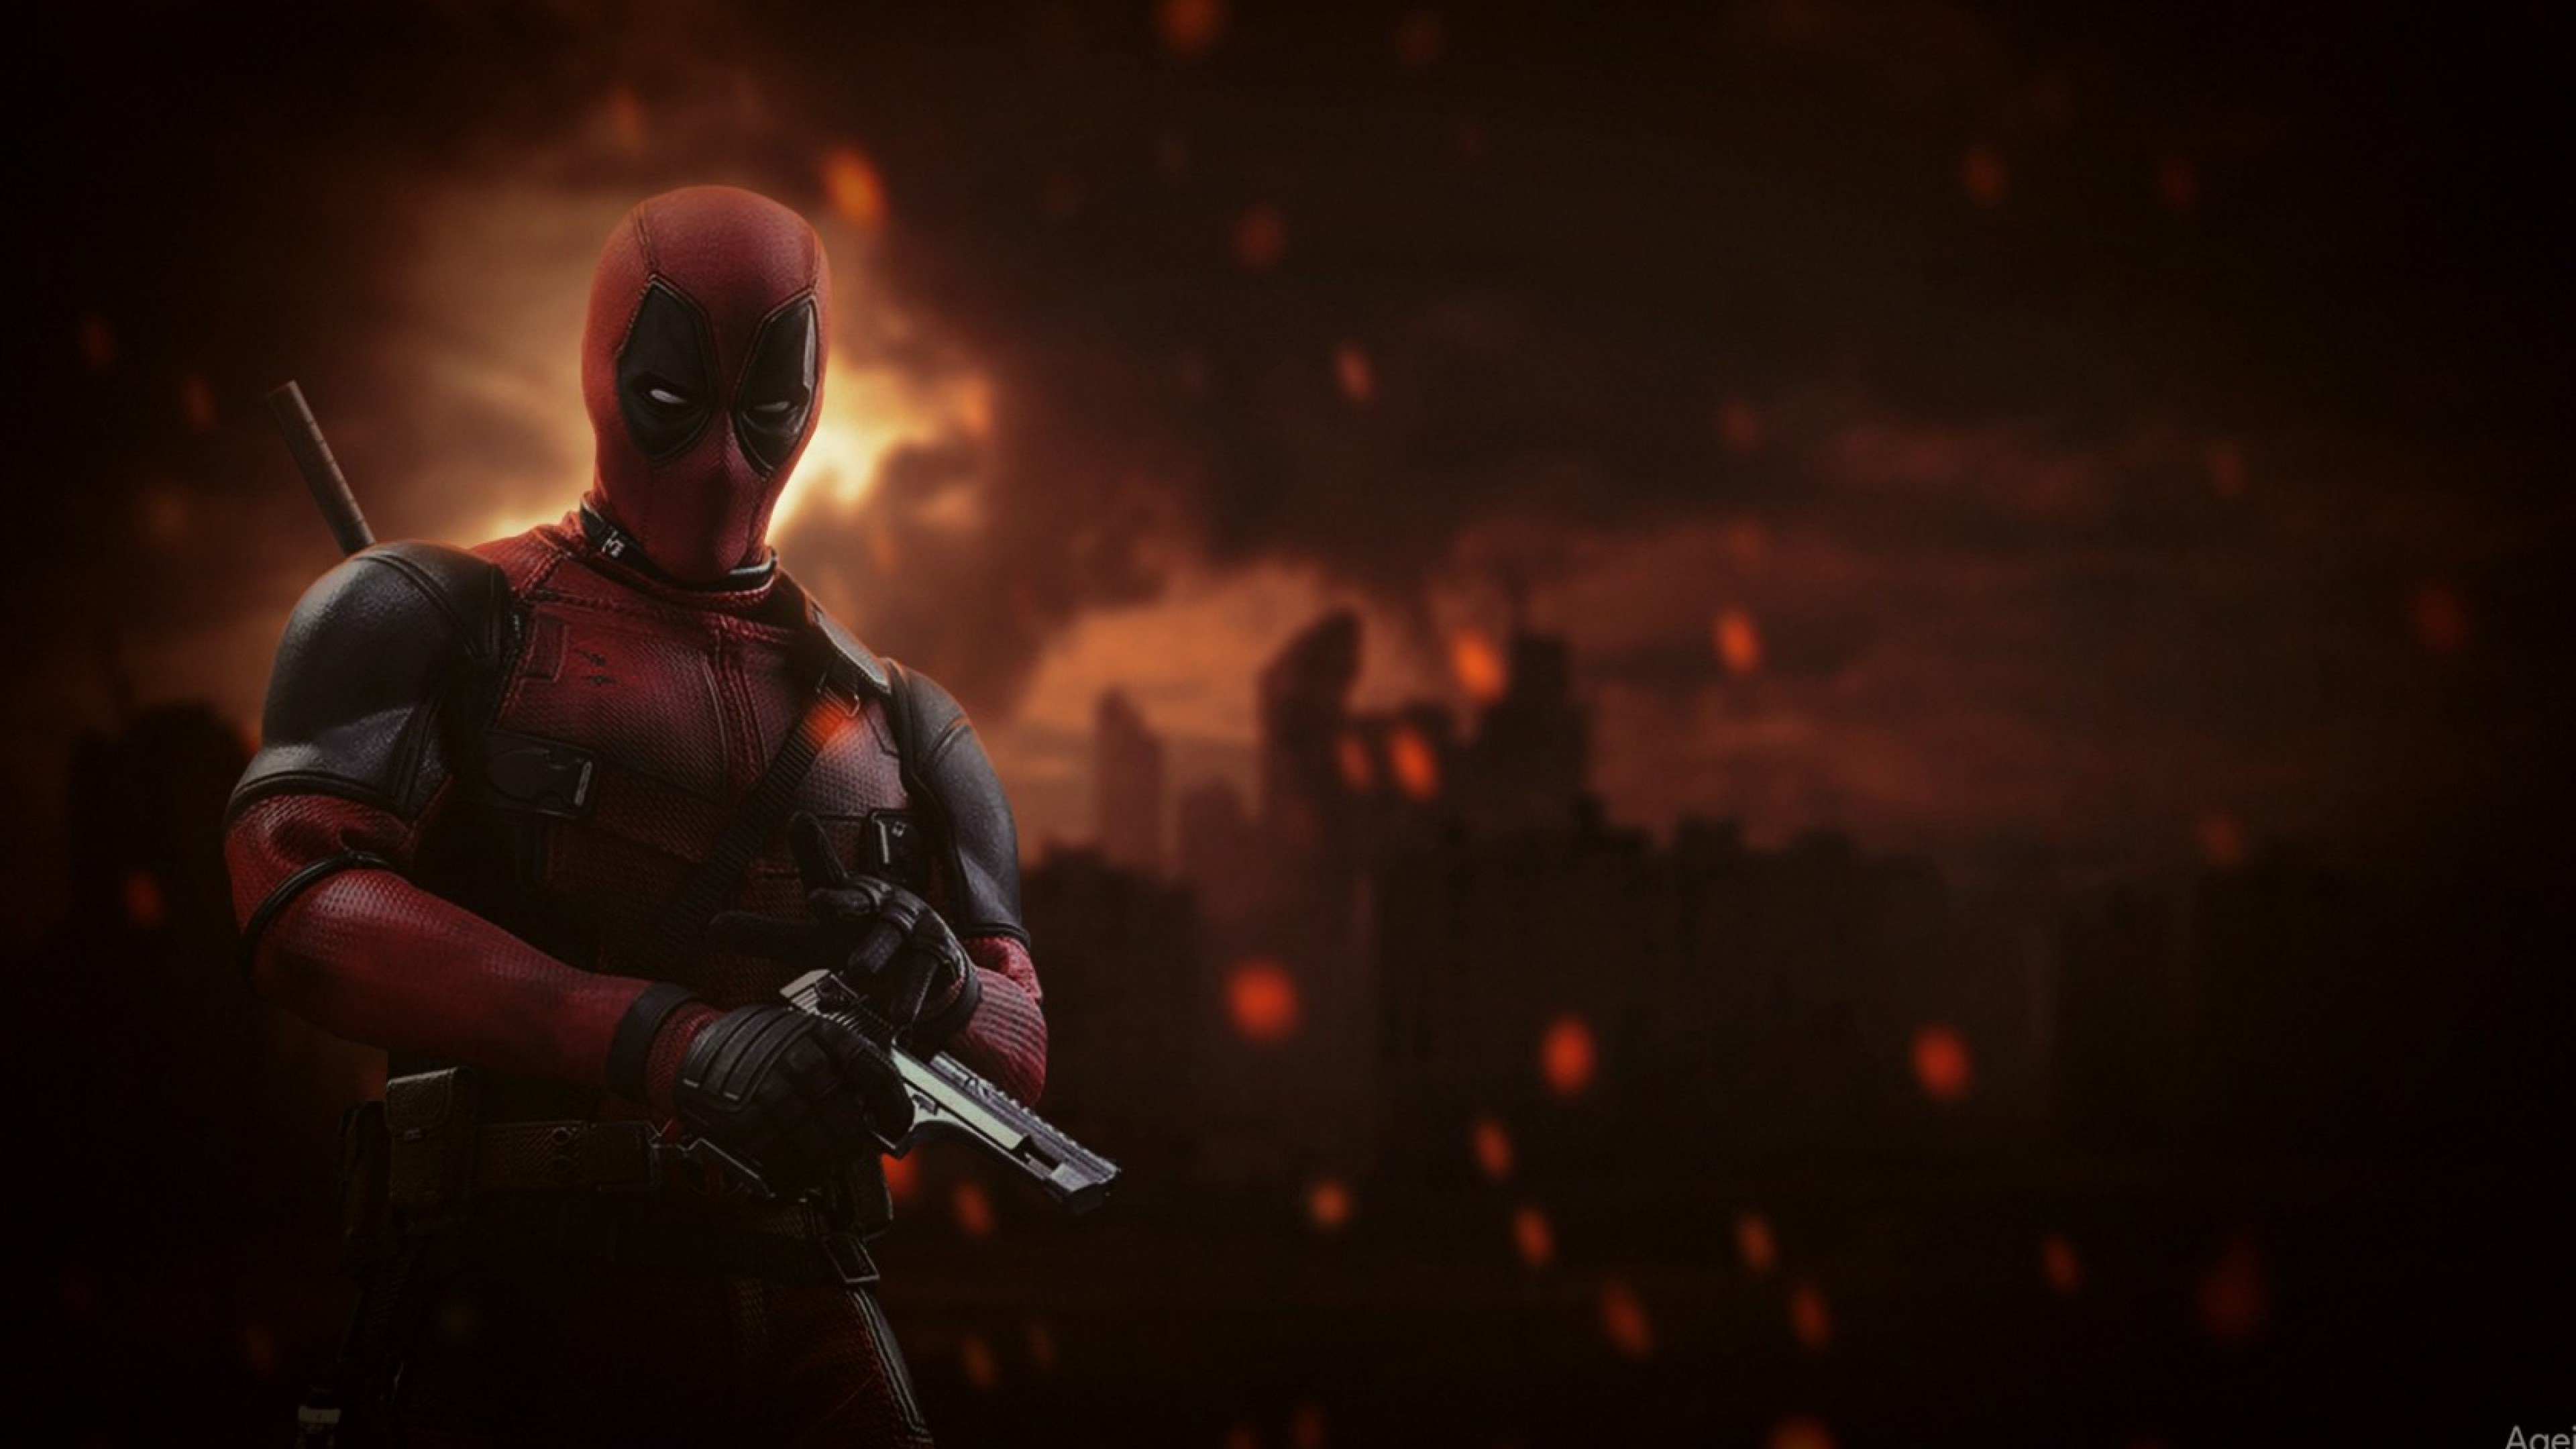 Deadpool Background image